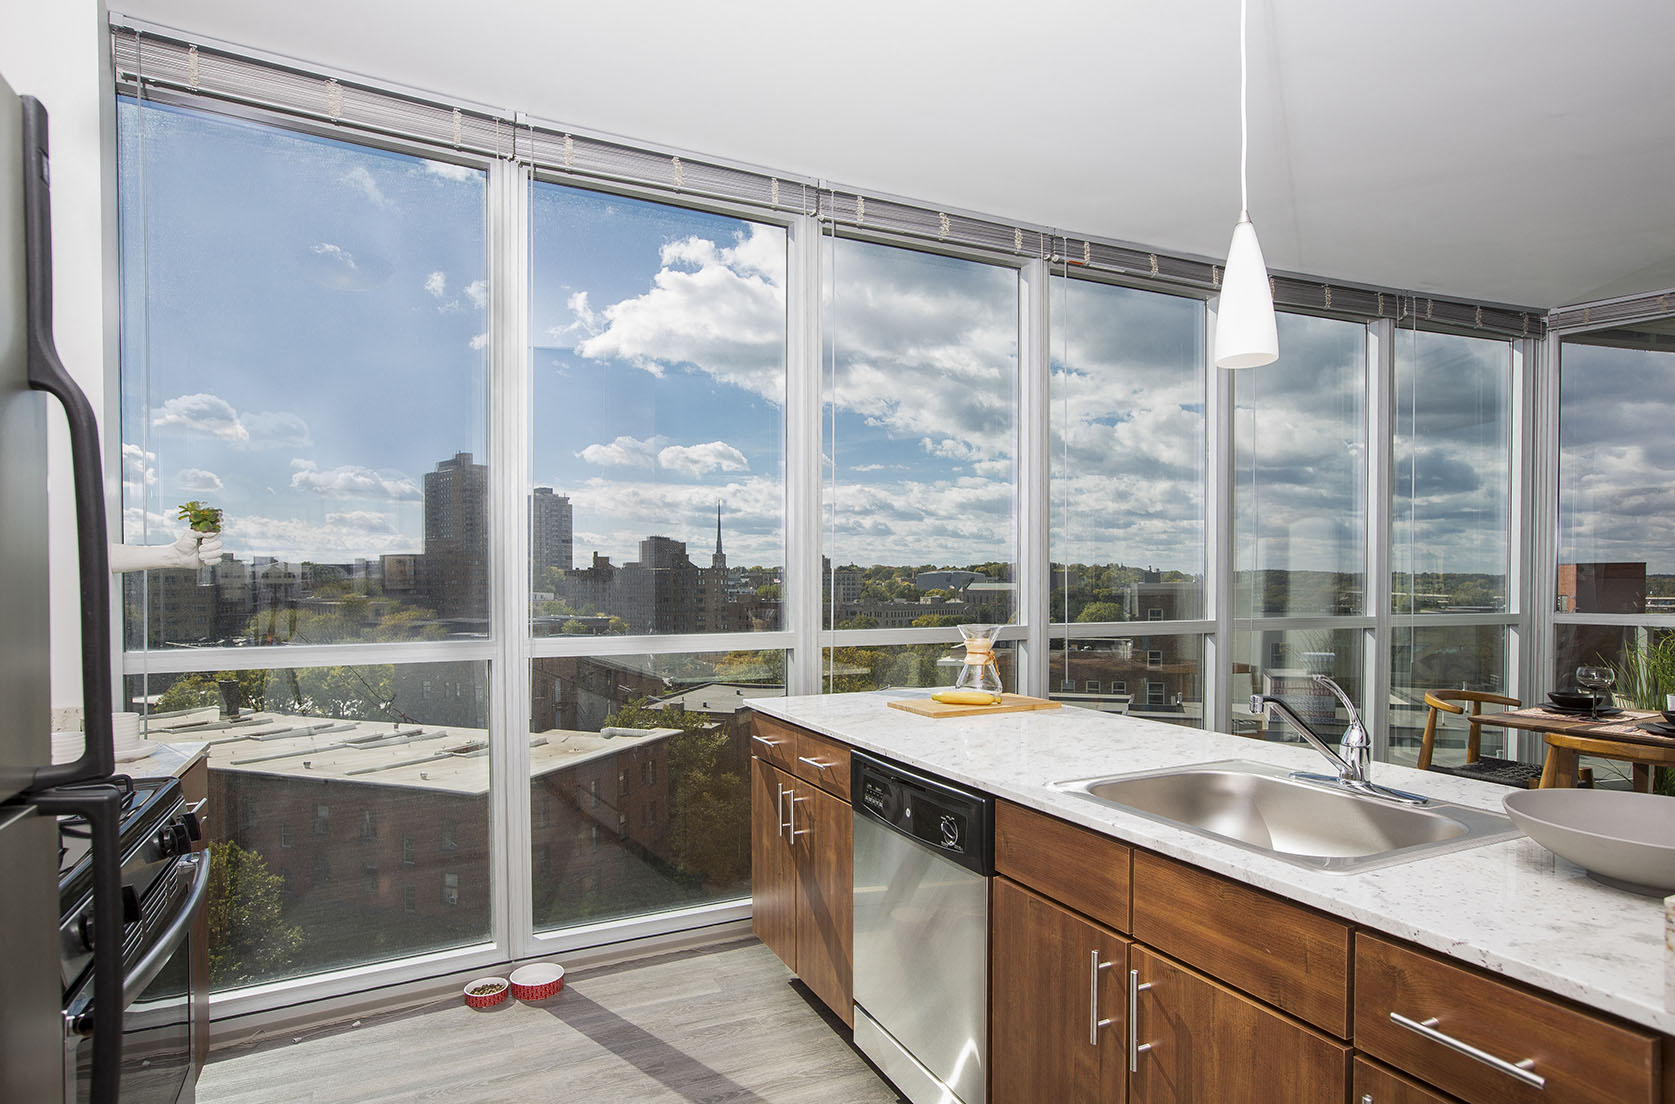 Bon A Luxurious Kitchen In LPM Apartments With A Sweeping View Of Downtown  Minneapolis.